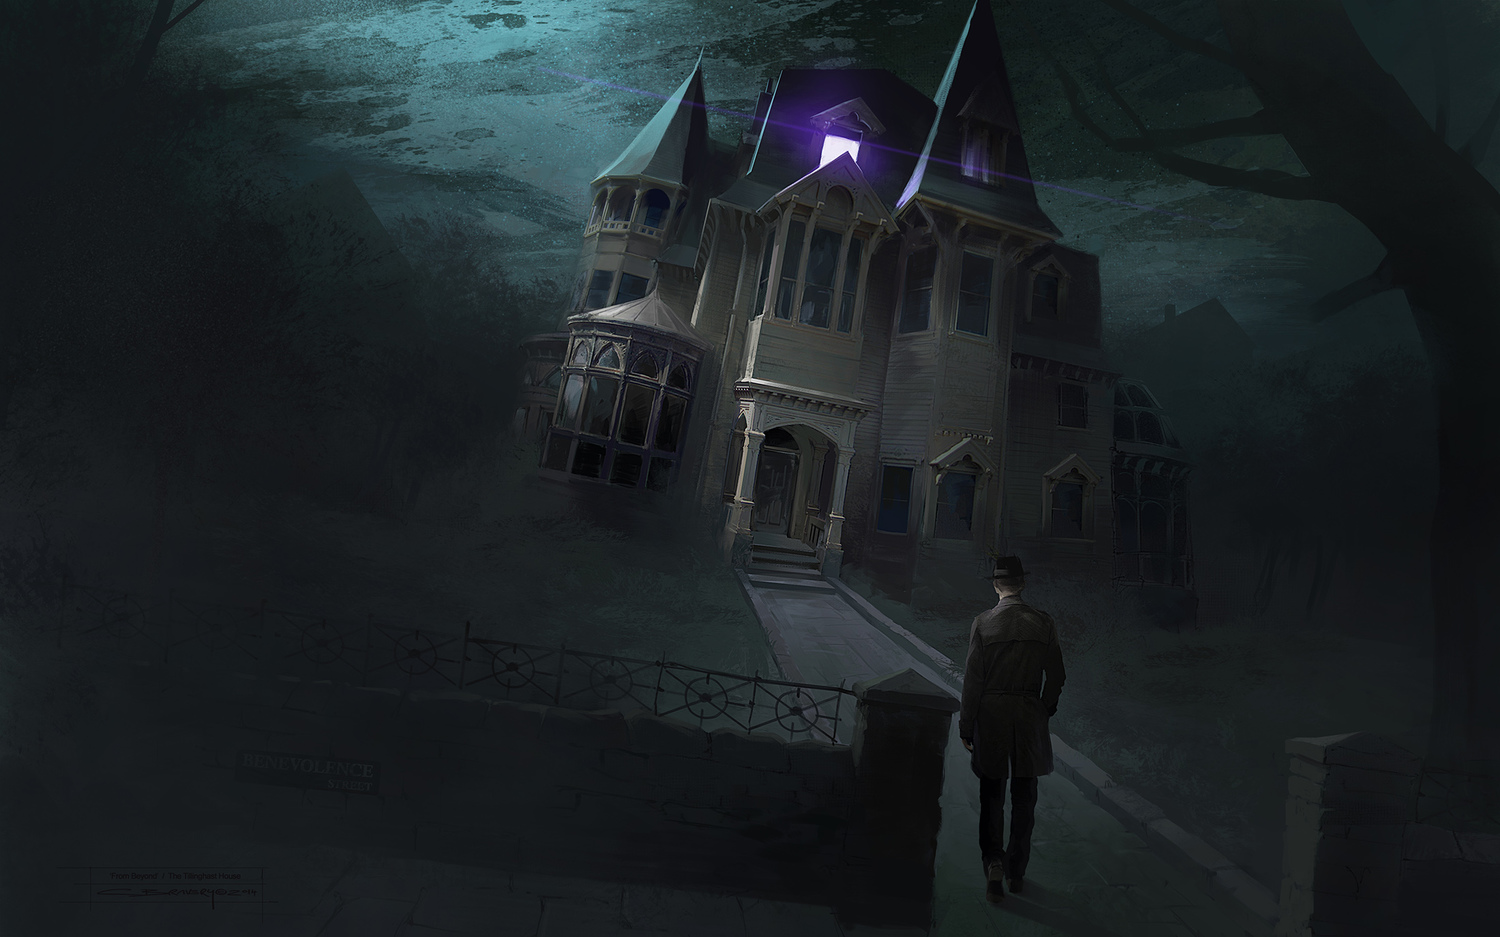 From Beyond concept art of the mansion